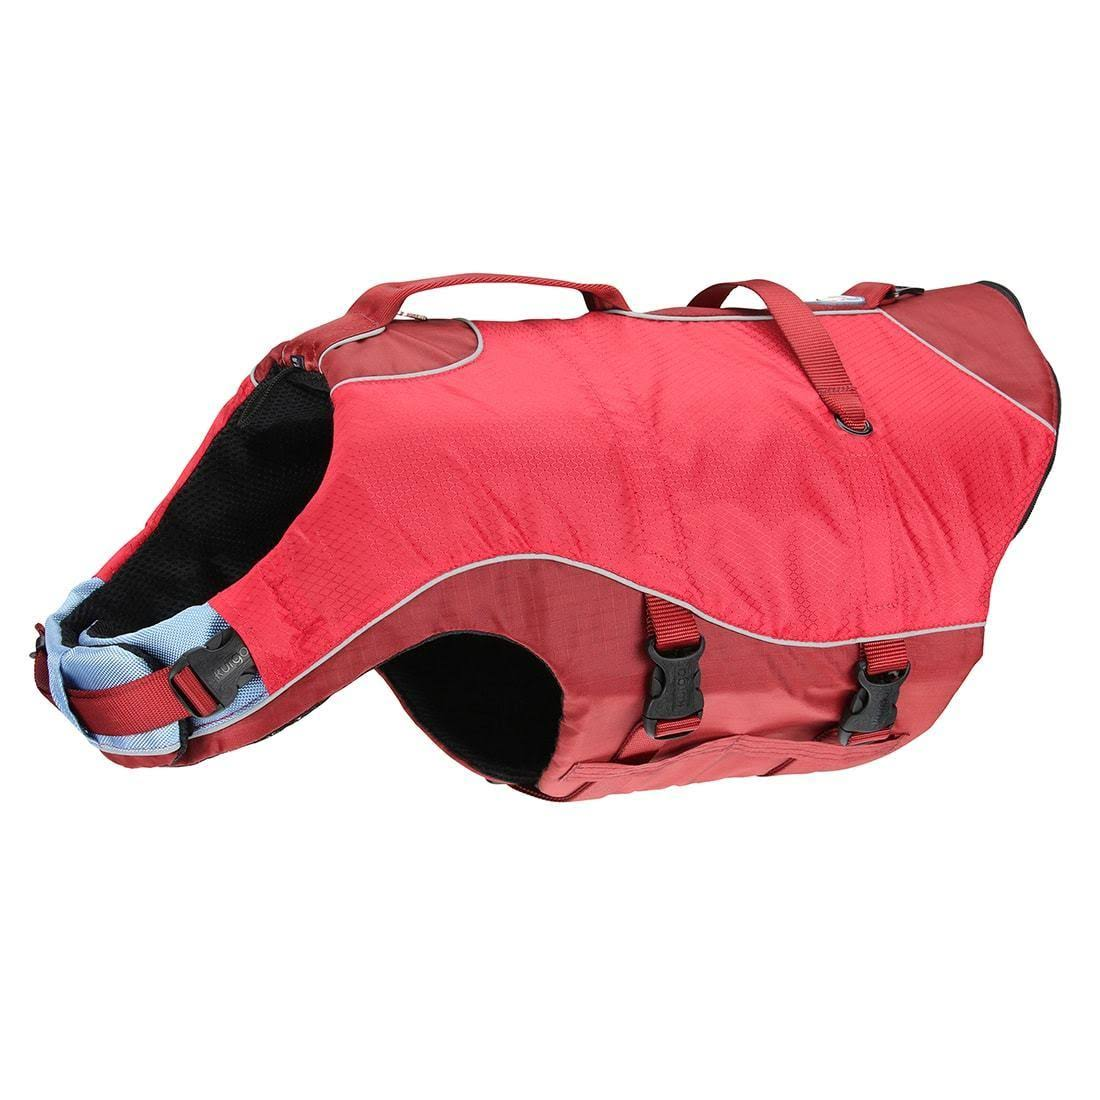 Kurgo Surf N Turf Dog Life Jacket, Red, Small